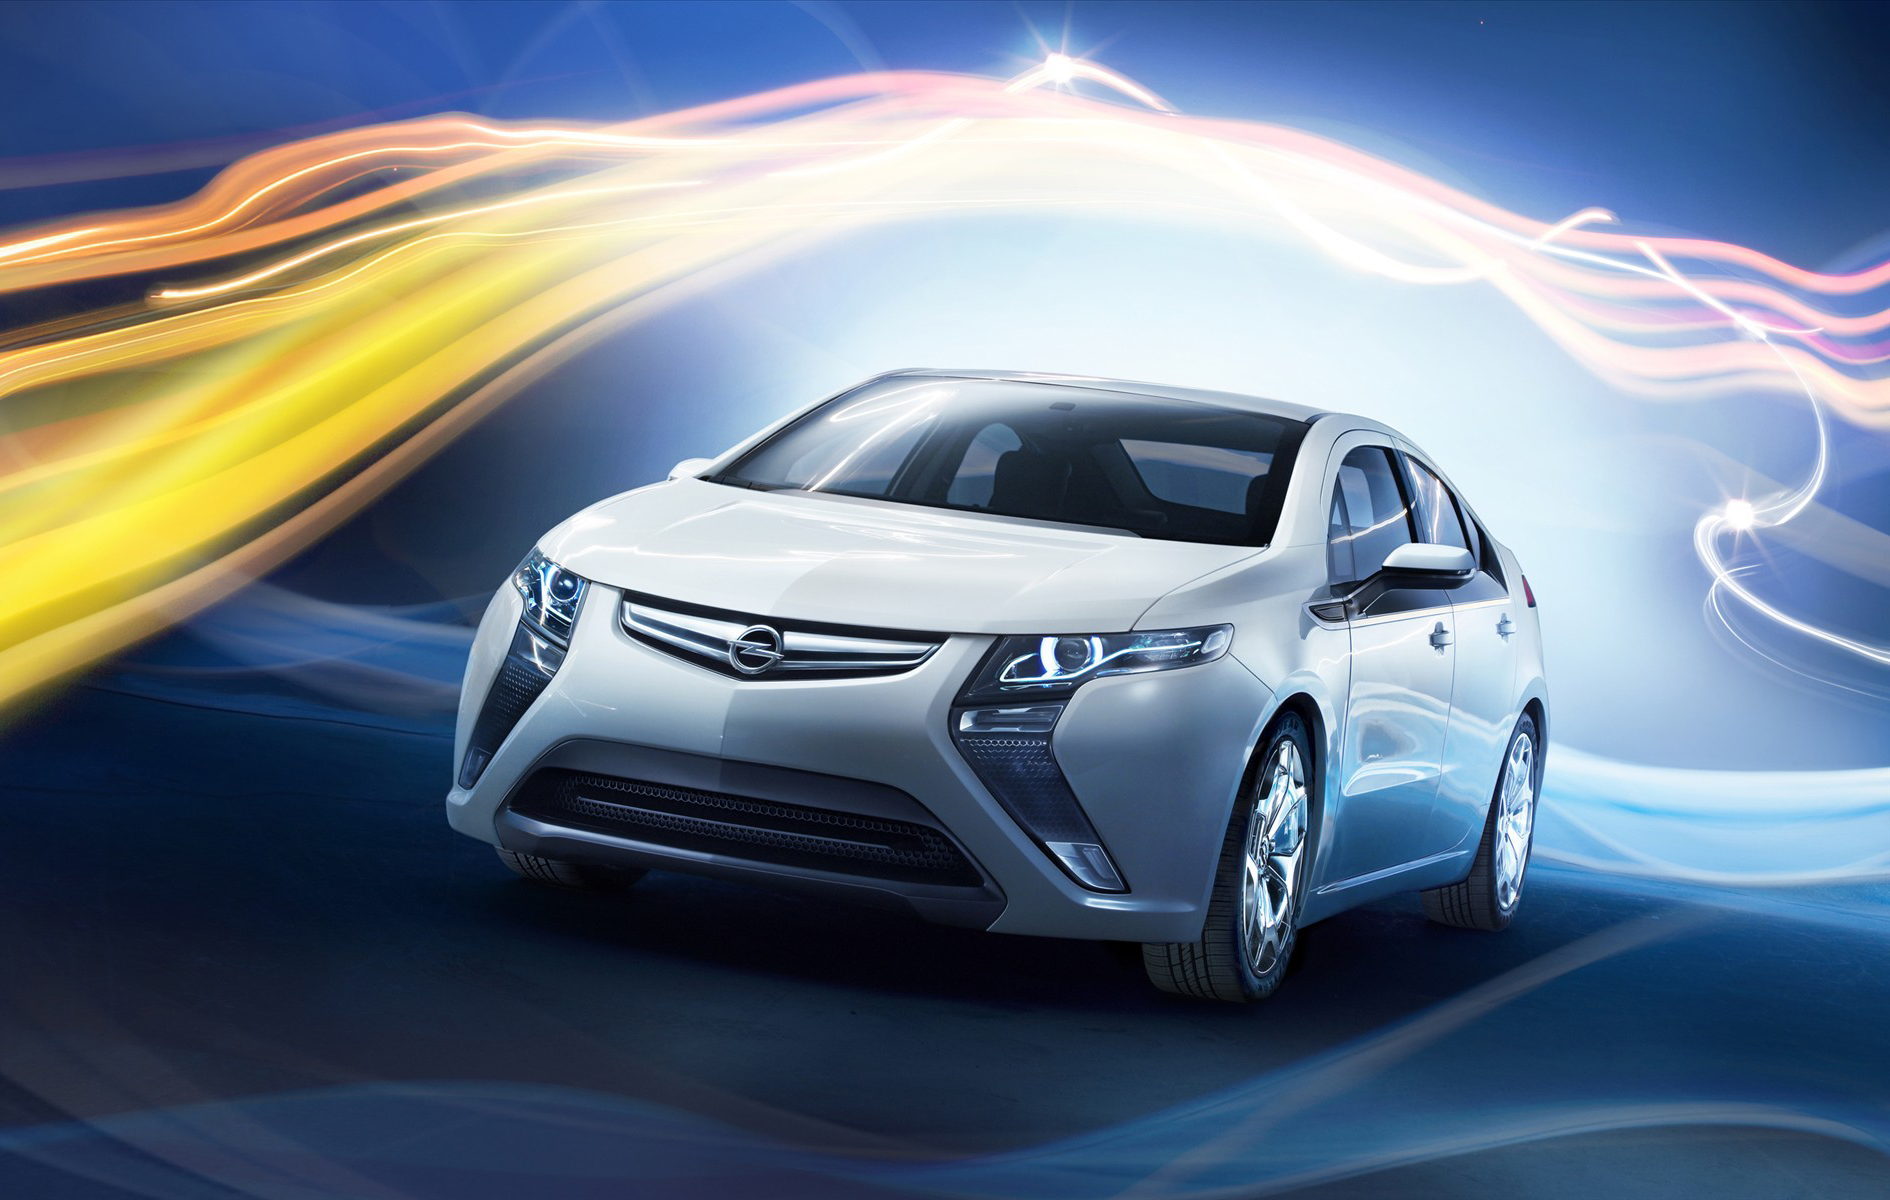 2012 Opel Ampera widescreen 10 Opel Ampera Famous for Sophisticated Glossy Car Design